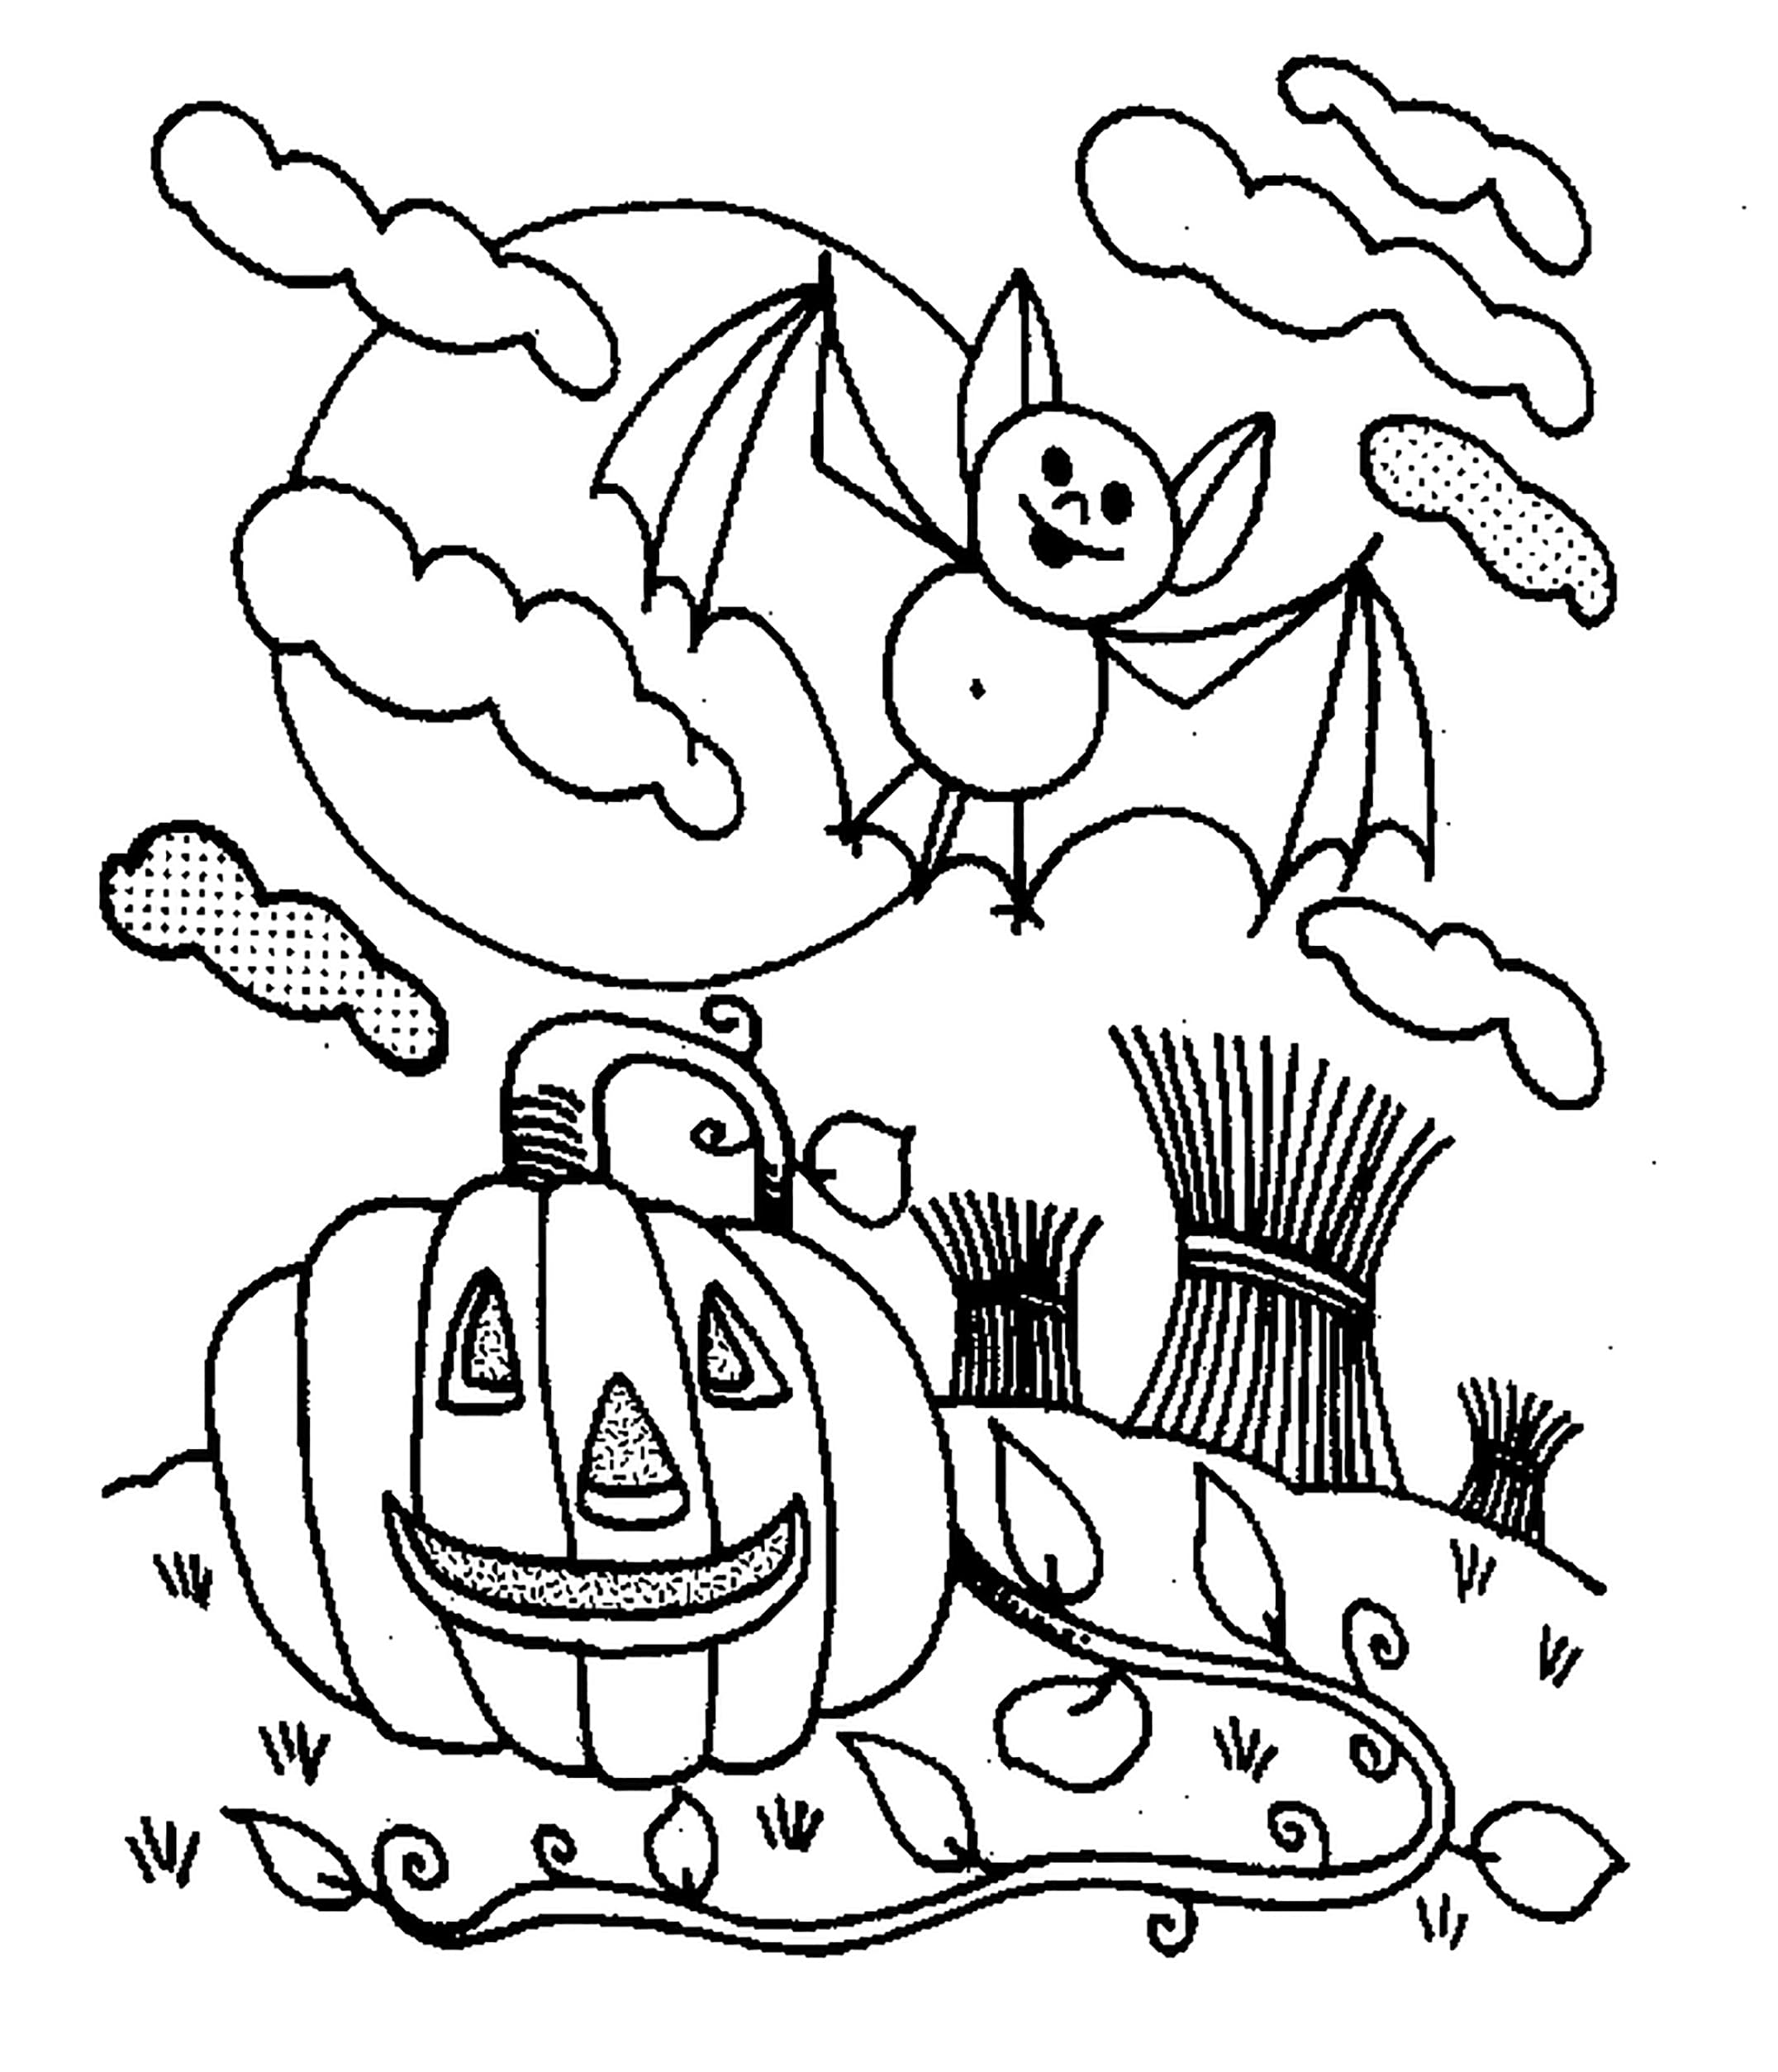 haloween coloring pages free halloween coloring pages for kids or for the kid in you coloring pages haloween